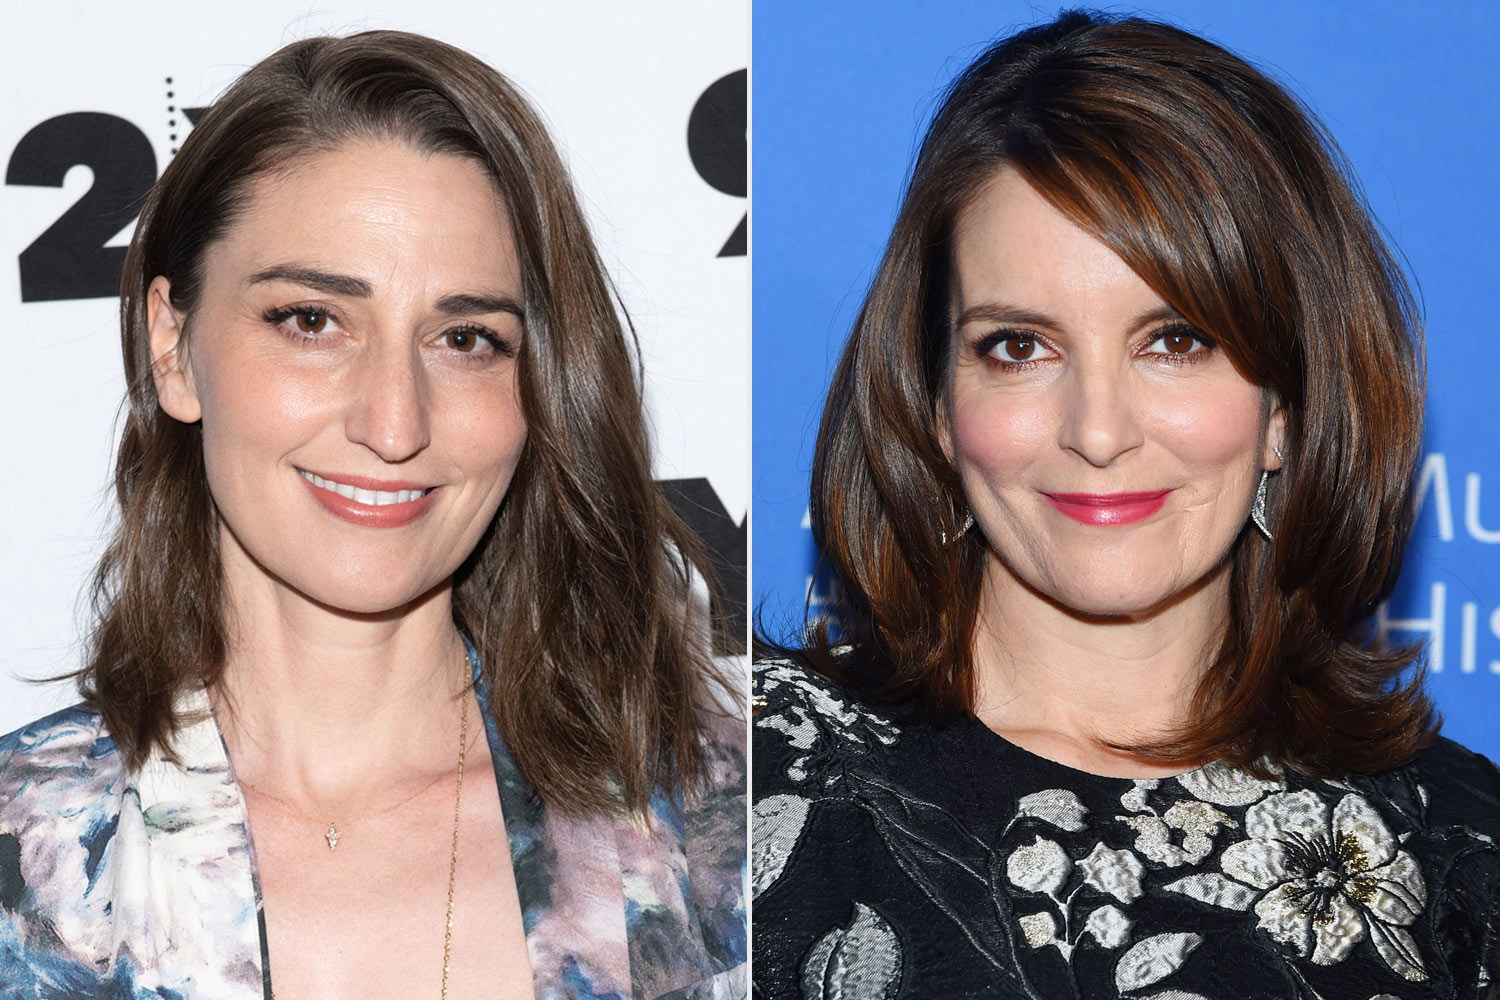 Sara Bareilles and Tina Fey